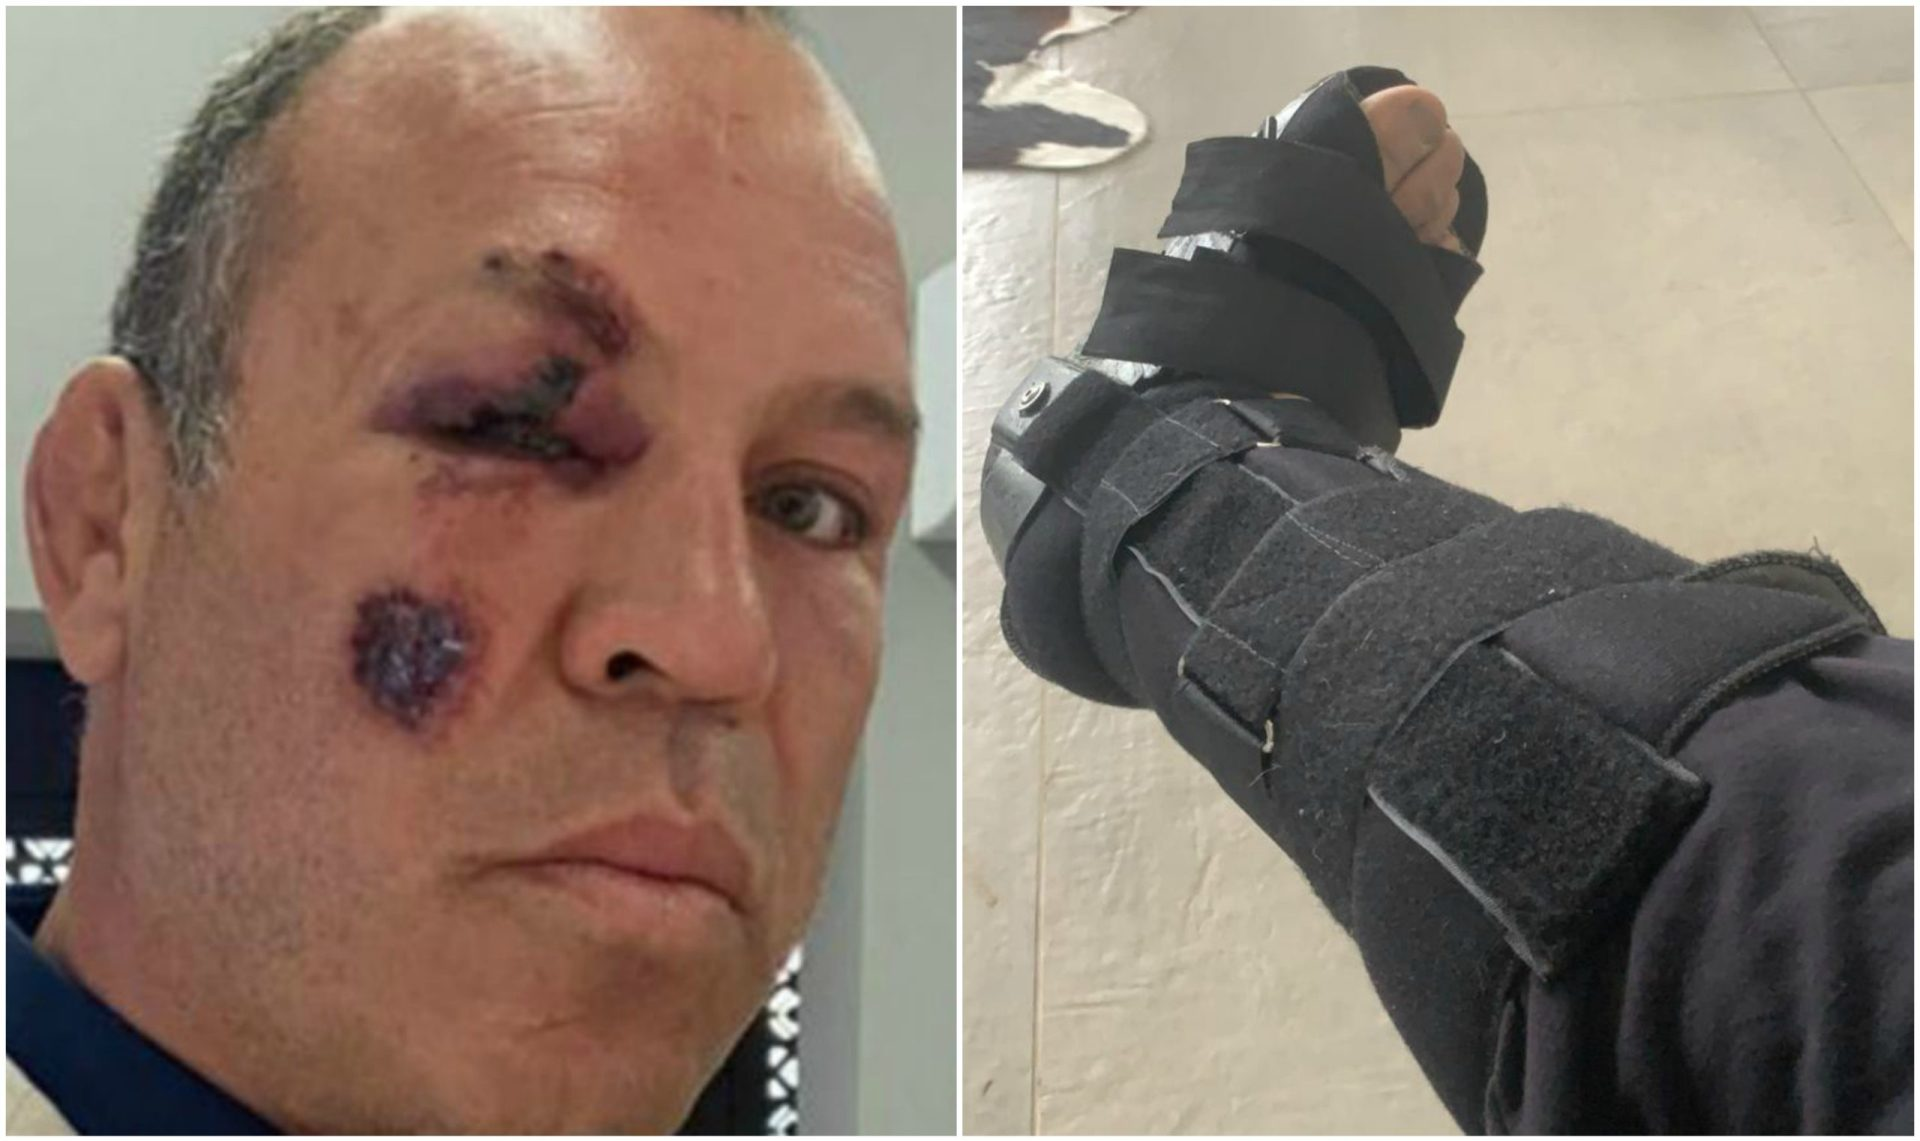 UFC veteran Wanderlei Silva survives bicycle accident after being hit by a car - Wanderlei Silva